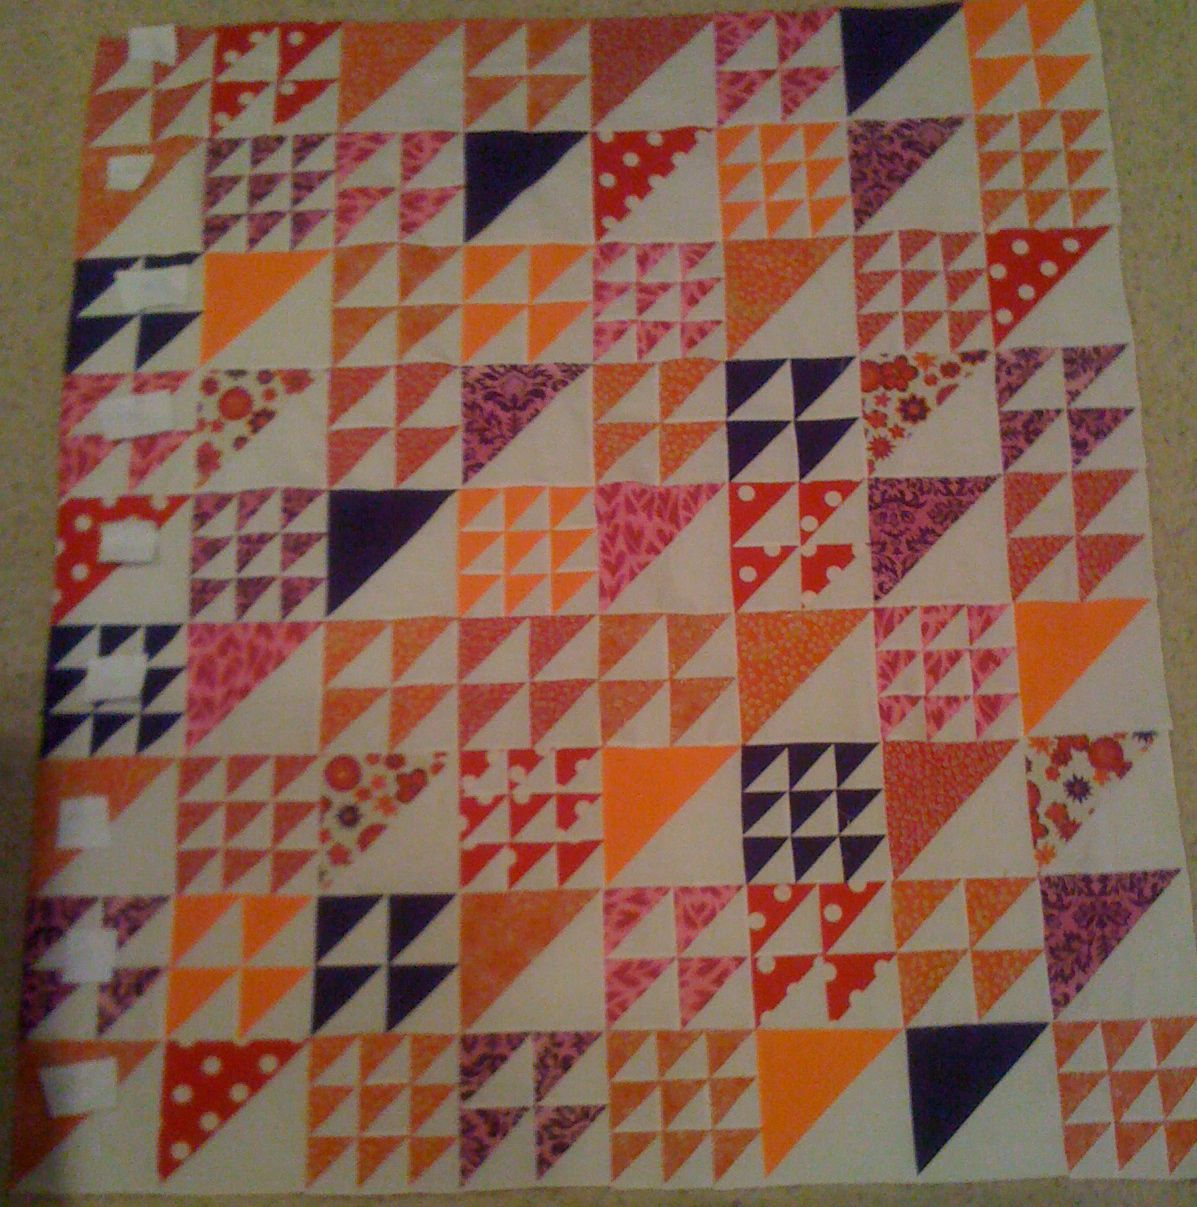 half square triangles quilt | After the half square triangles were ... : half square triangle quilt - Adamdwight.com